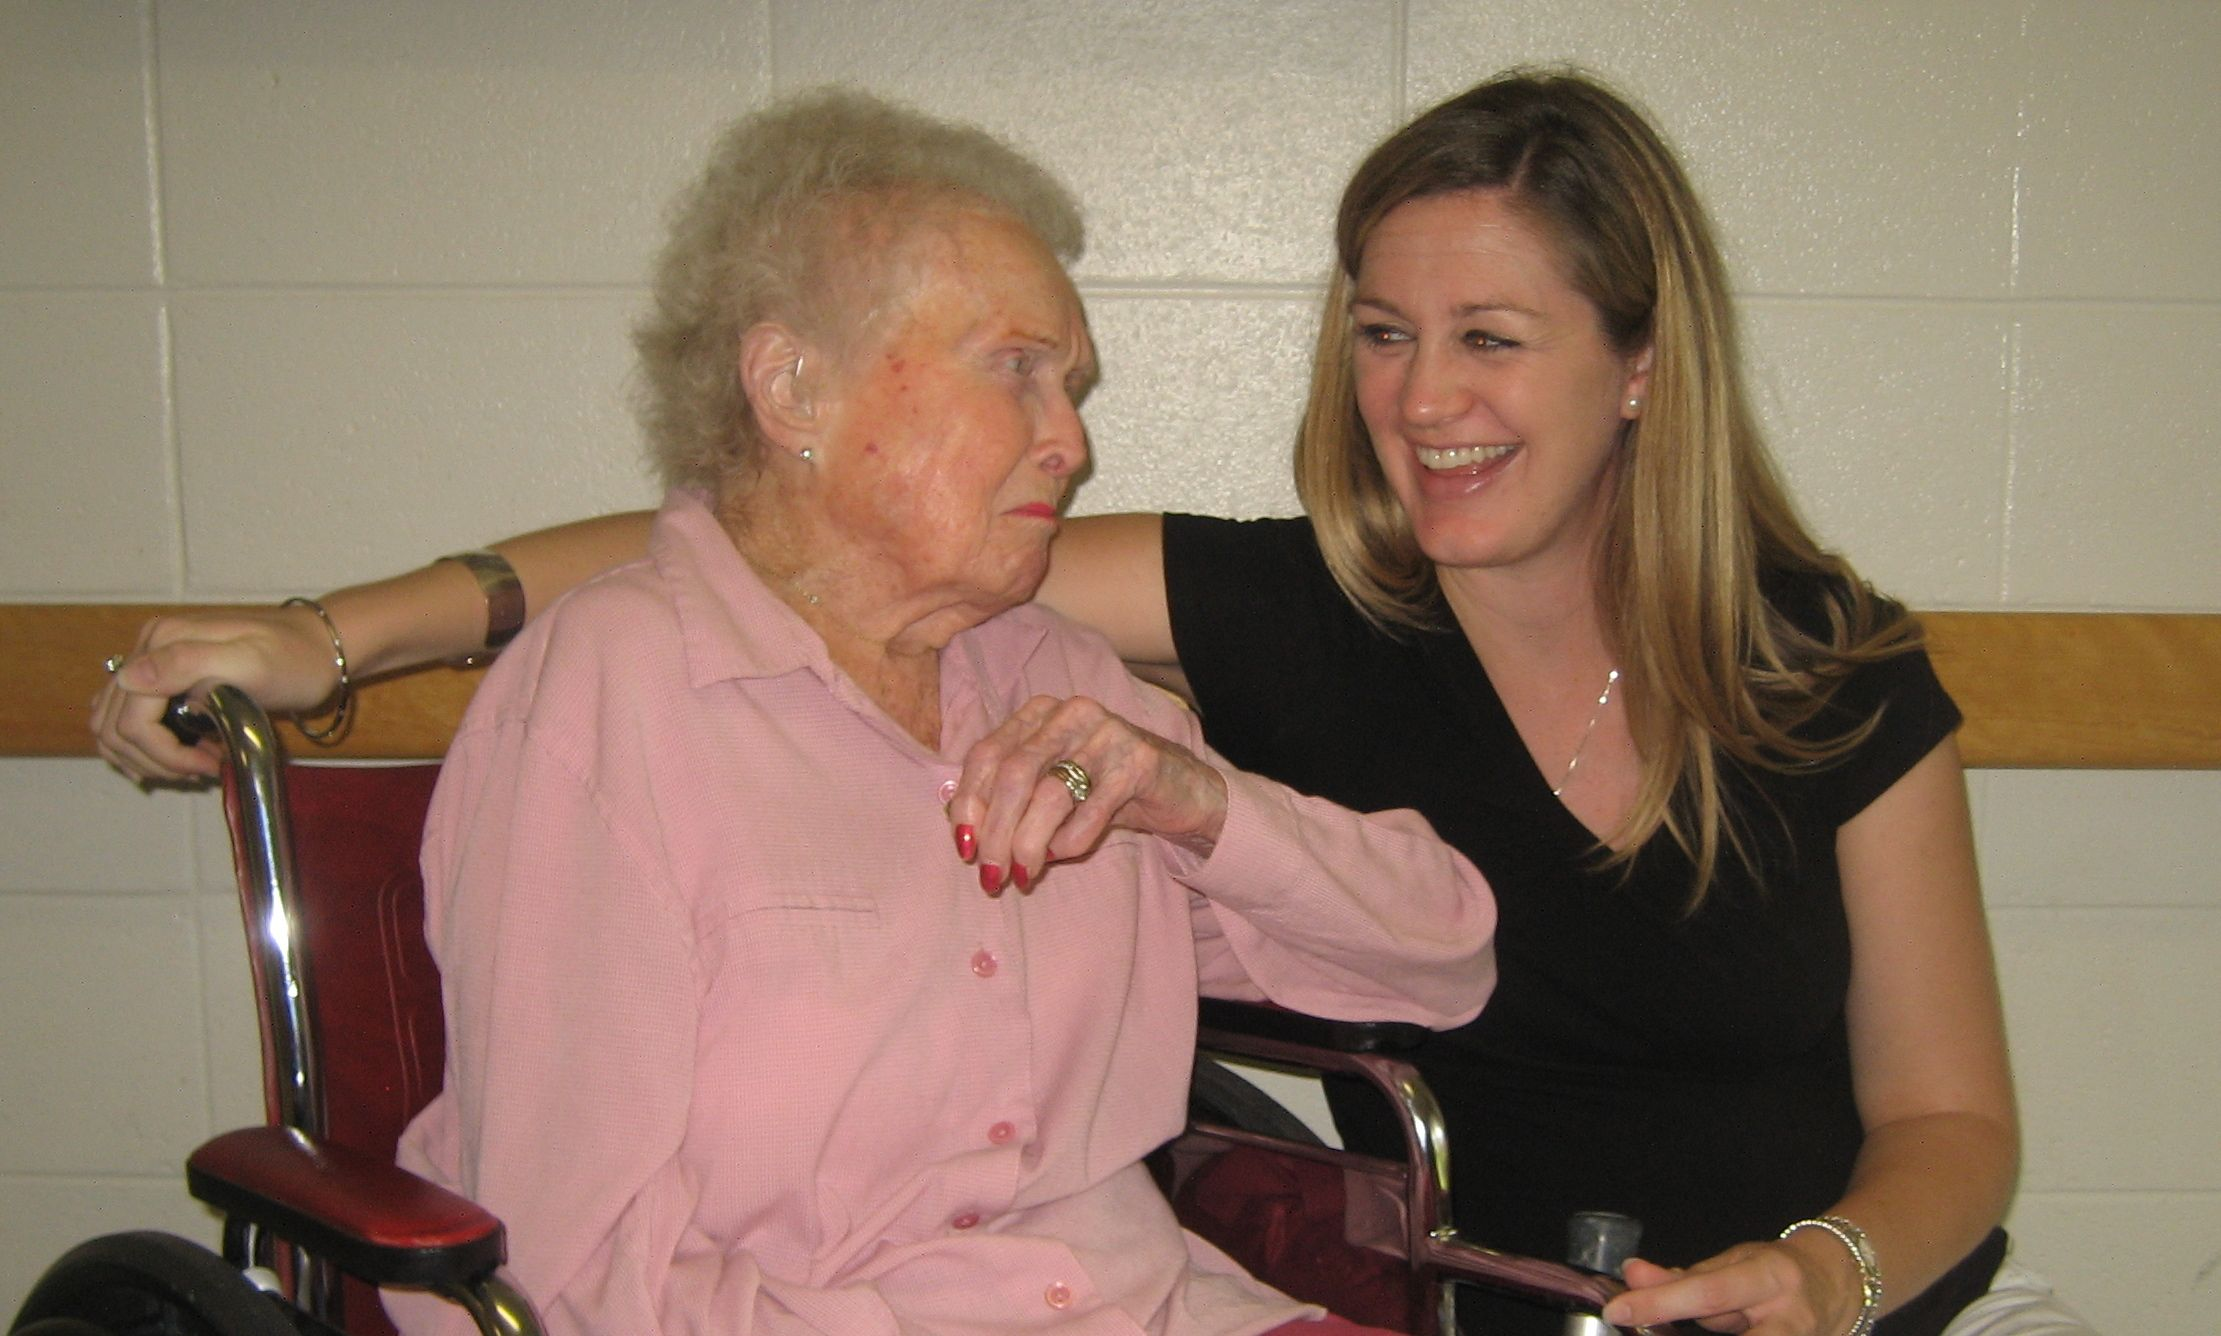 my grandmother Find and save ideas about grandmothers on pinterest | see more ideas about grandmothers love, grandchildren and grandmother quotes.